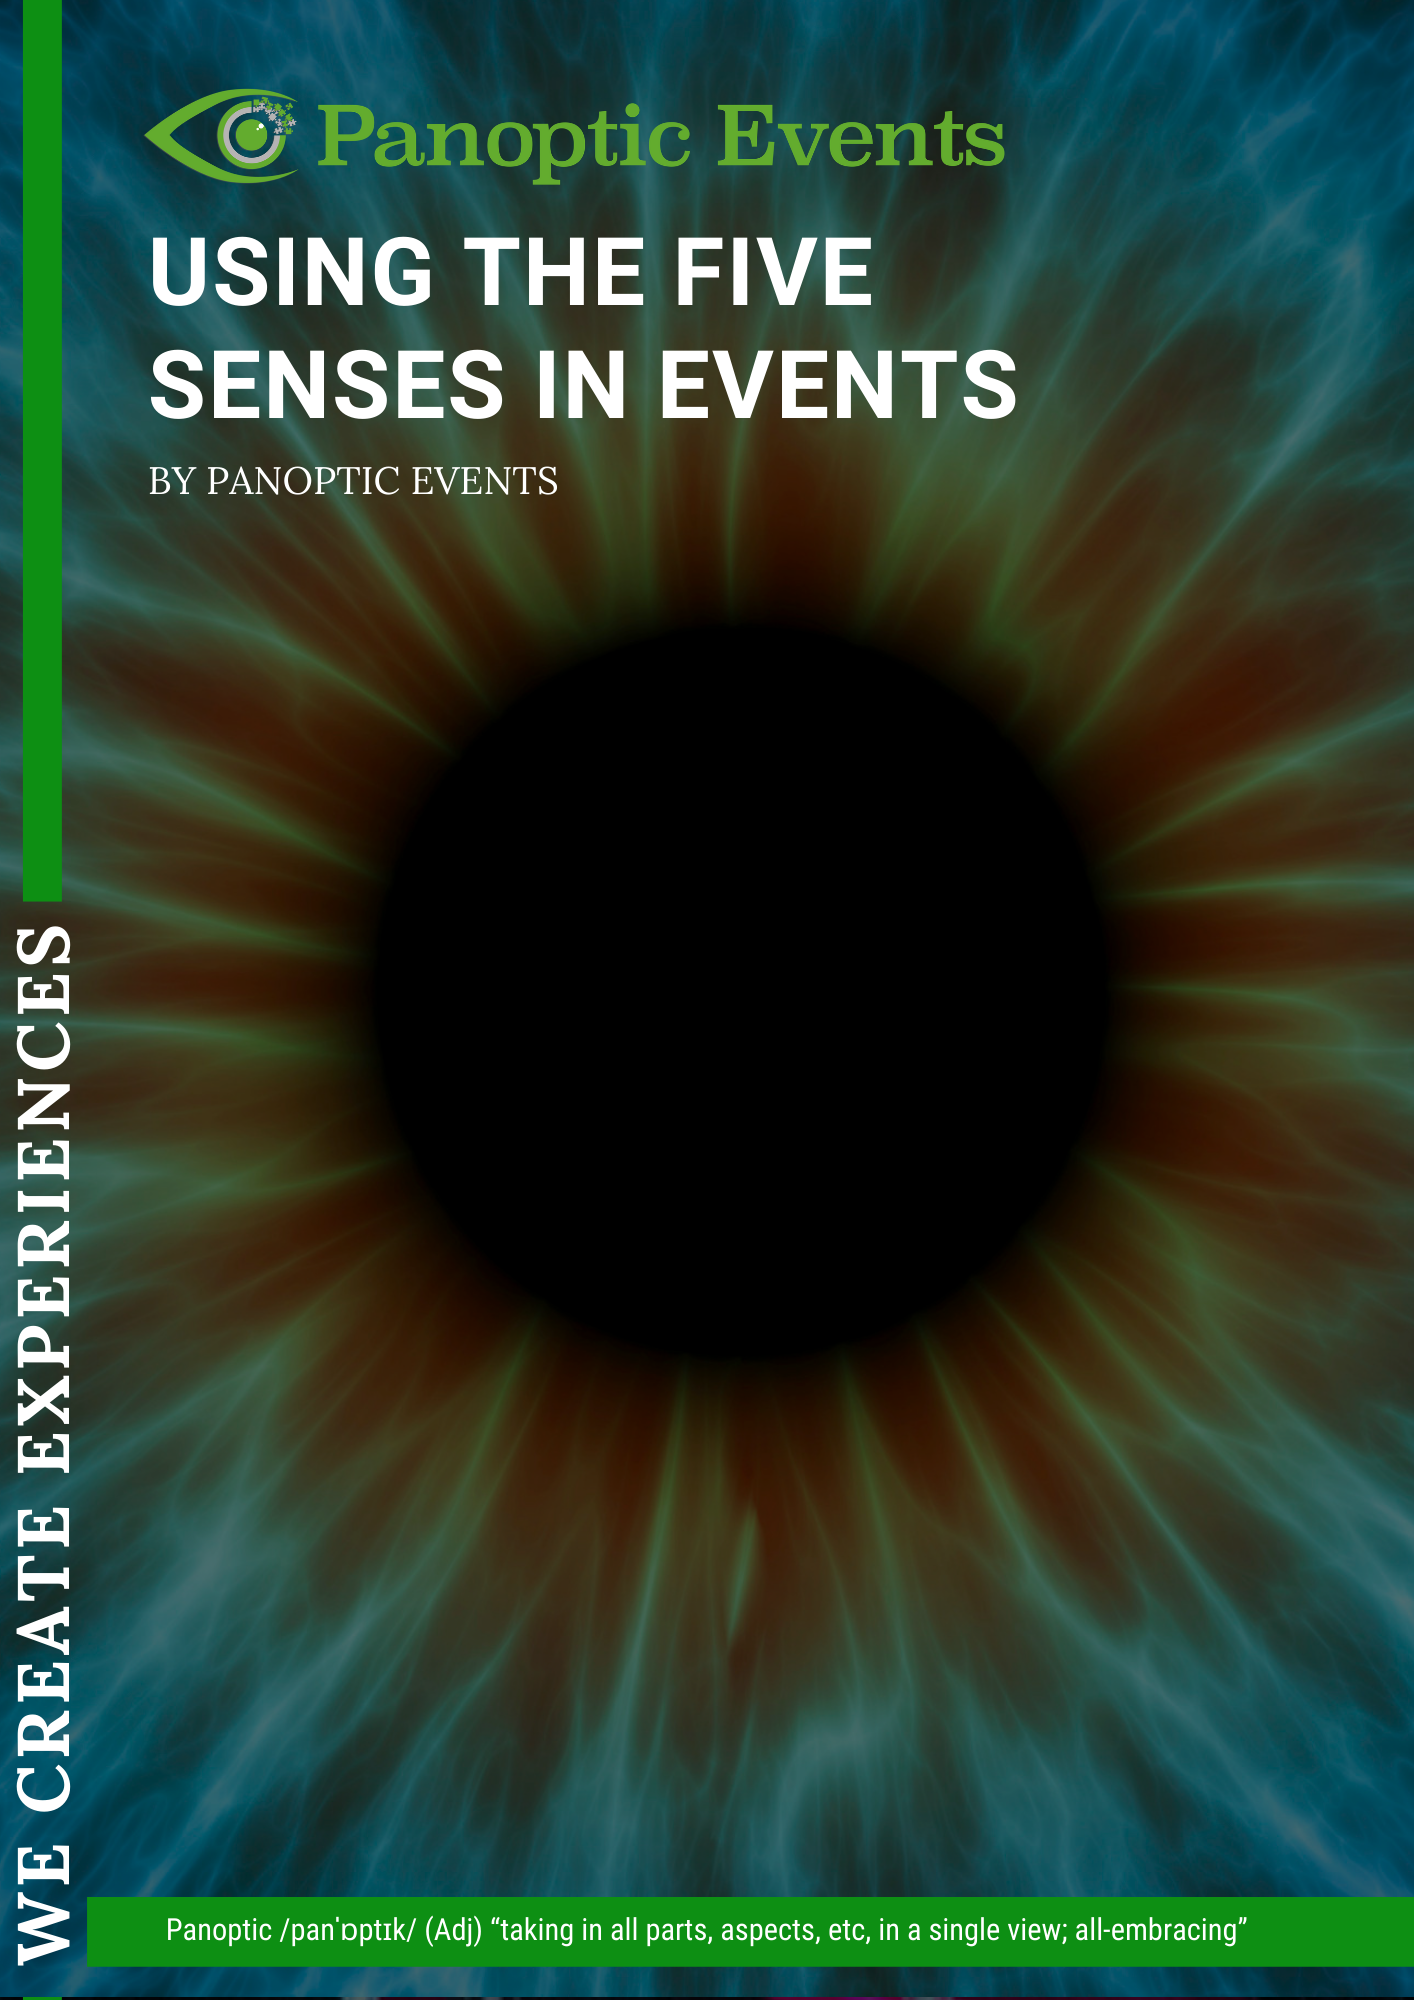 using the five senses at events